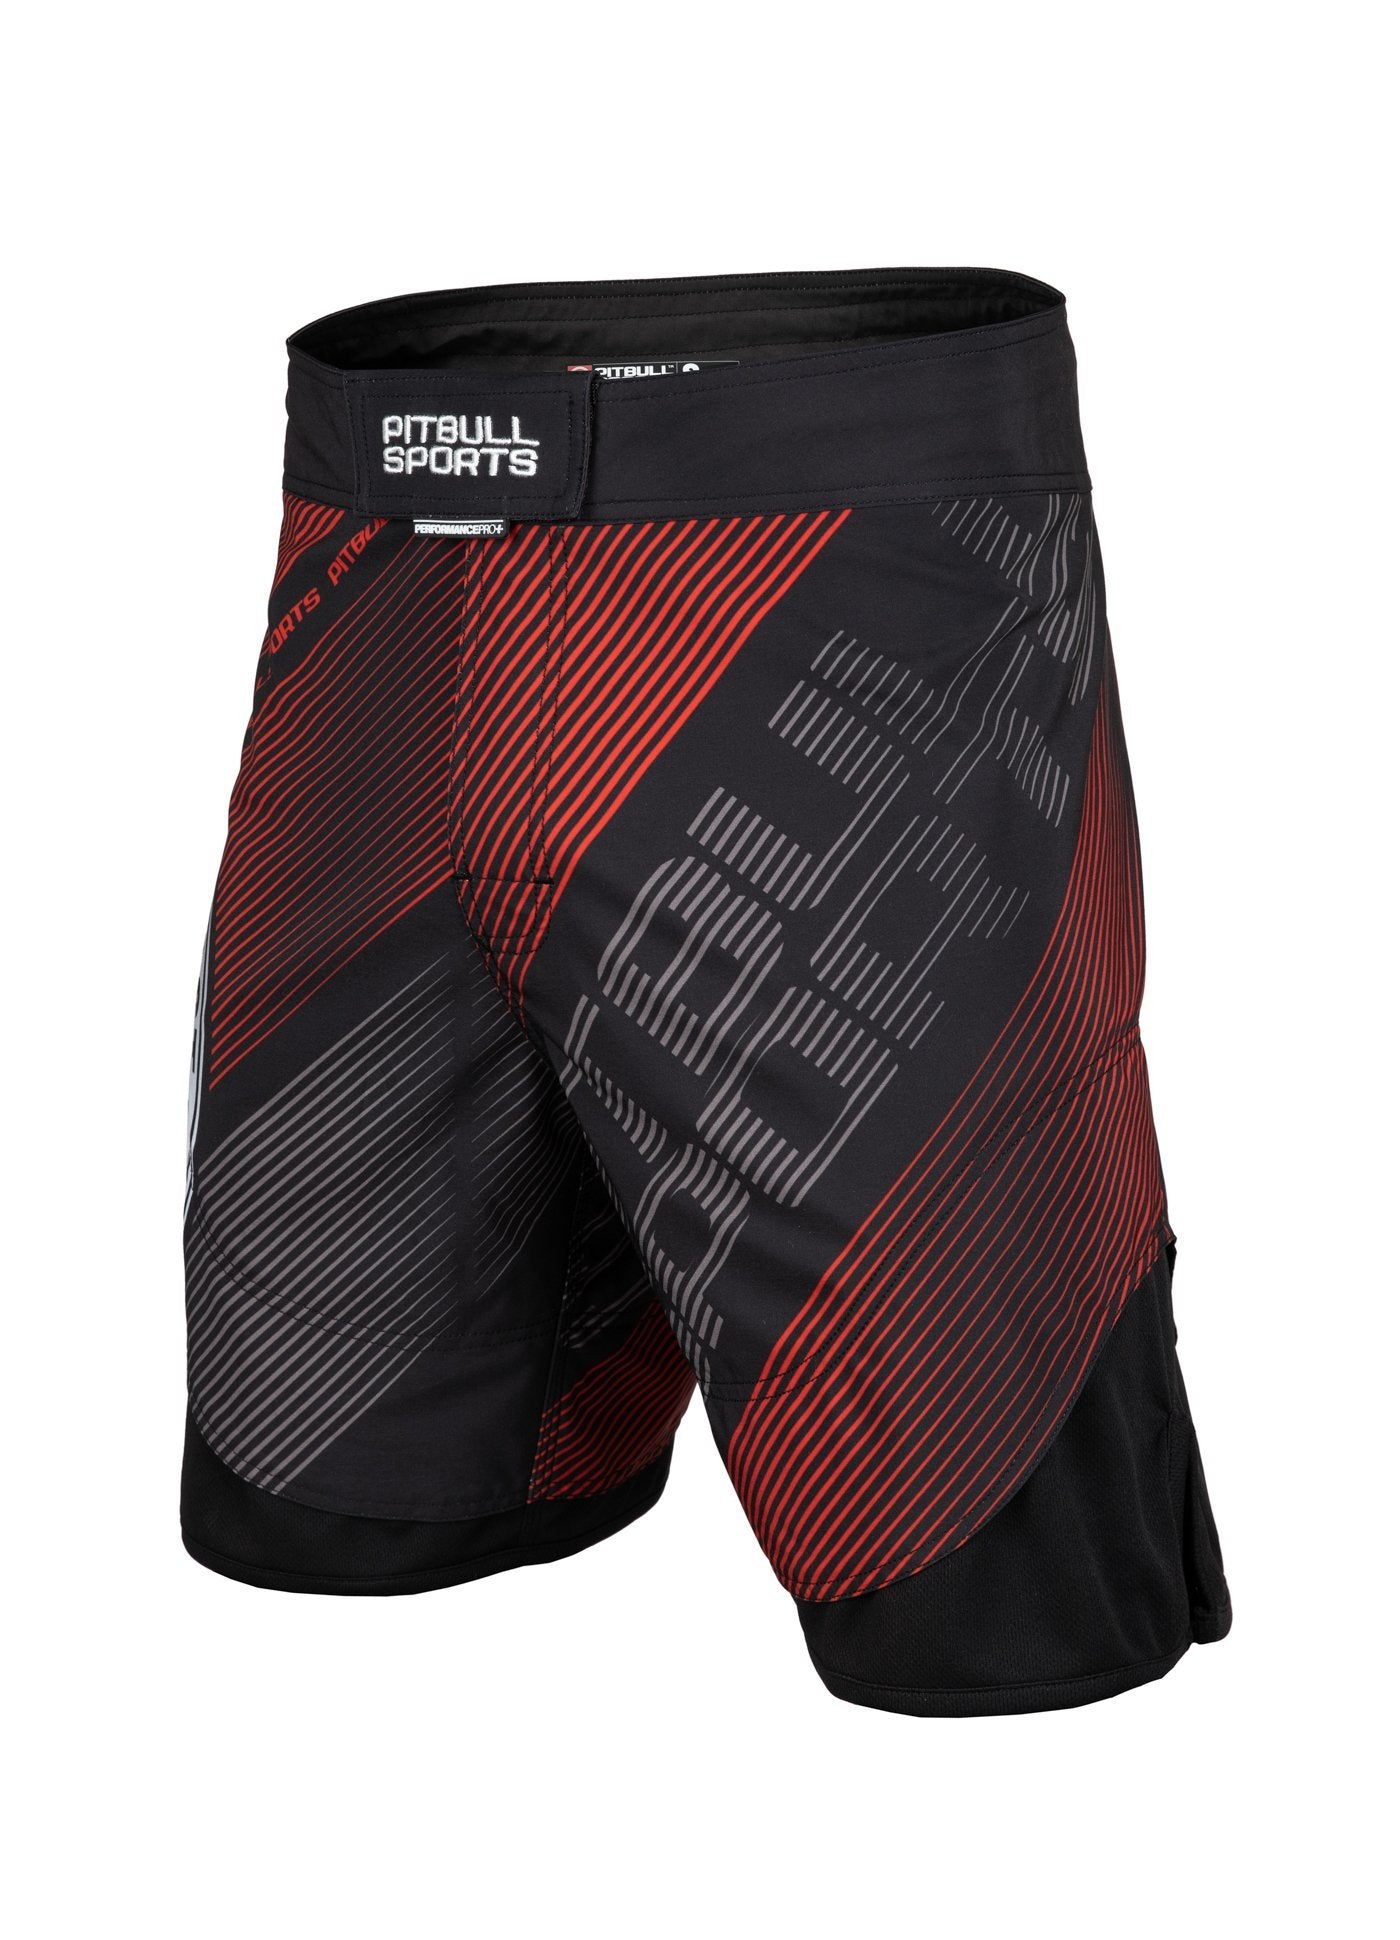 Grappling Shorts NEW CHARGER Black - Pitbull West Coast U.S.A.